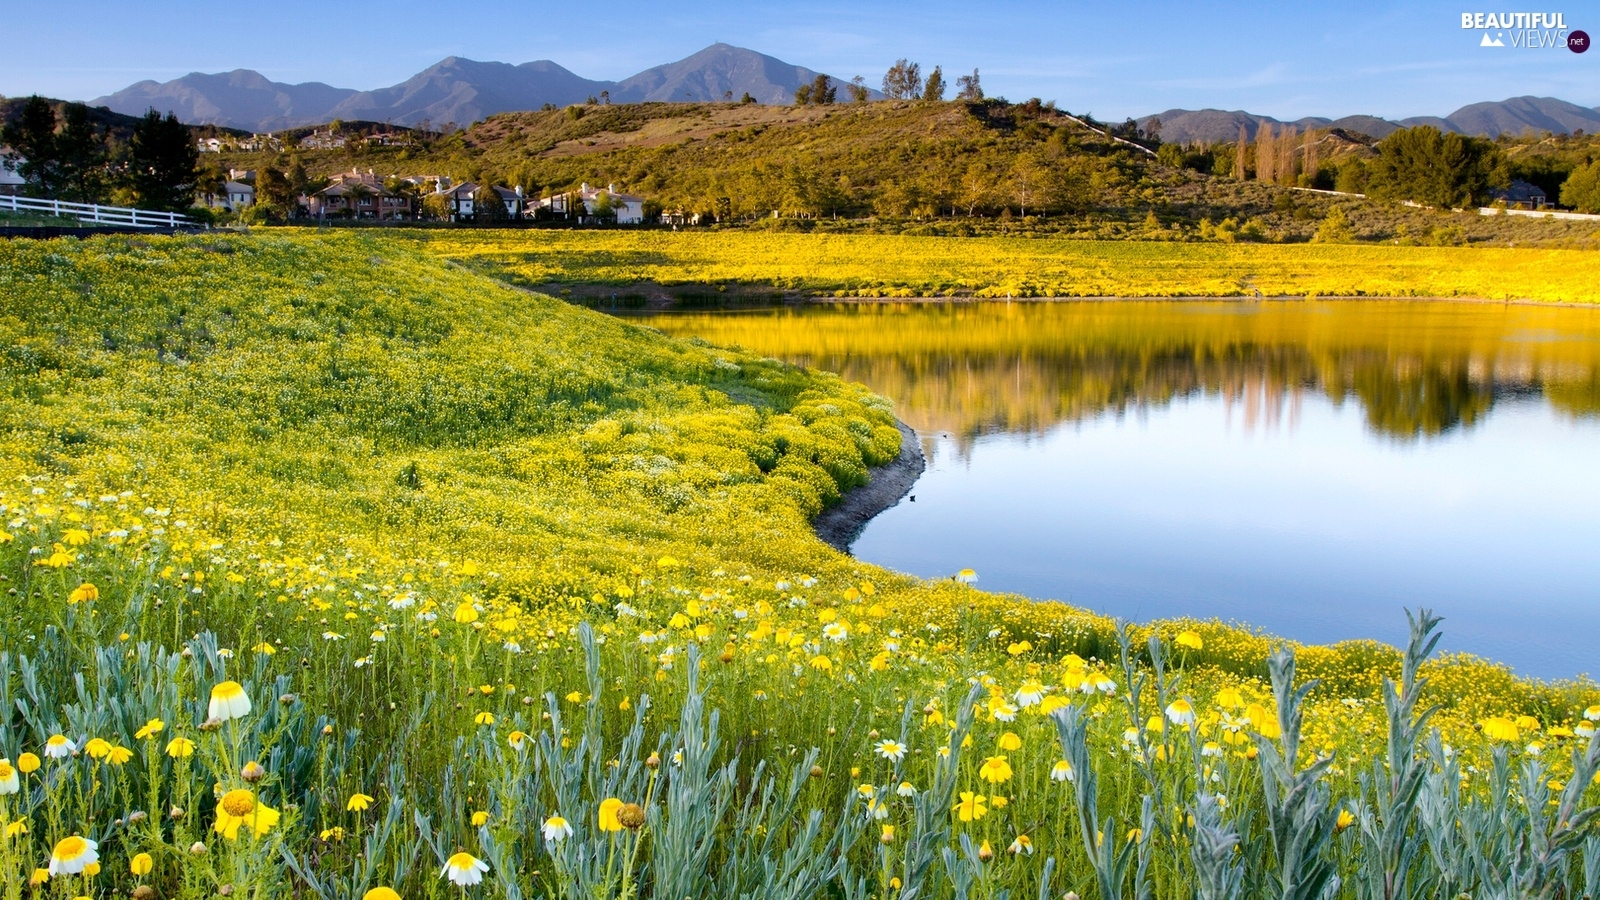 Mountains, Meadow, Flowers, Pond - car